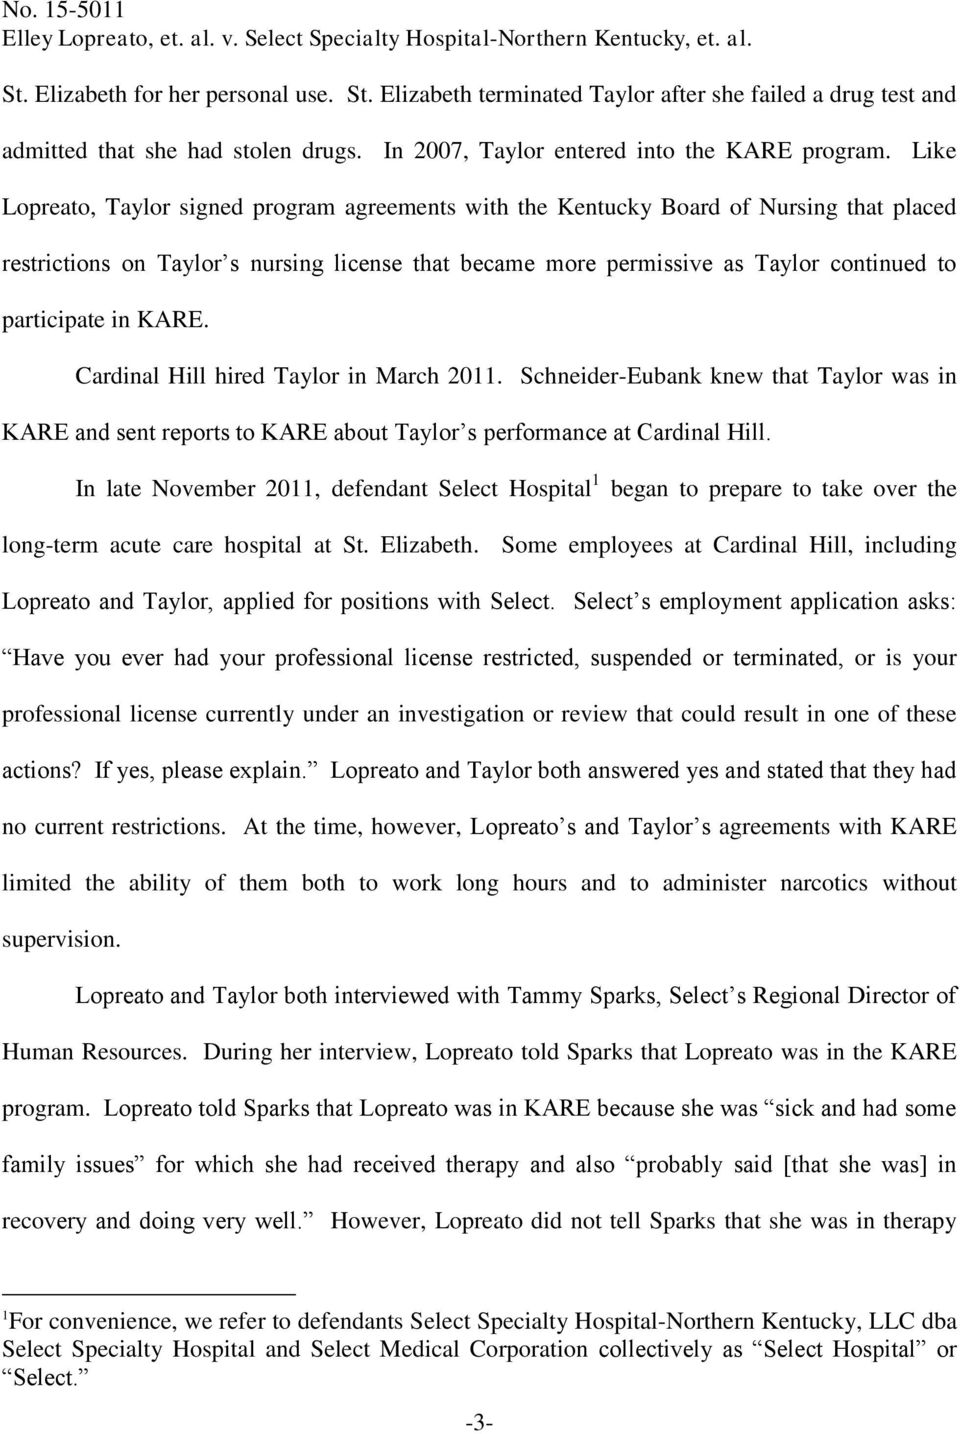 in KARE. Cardinal Hill hired Taylor in March 2011. Schneider-Eubank knew that Taylor was in KARE and sent reports to KARE about Taylor s performance at Cardinal Hill.